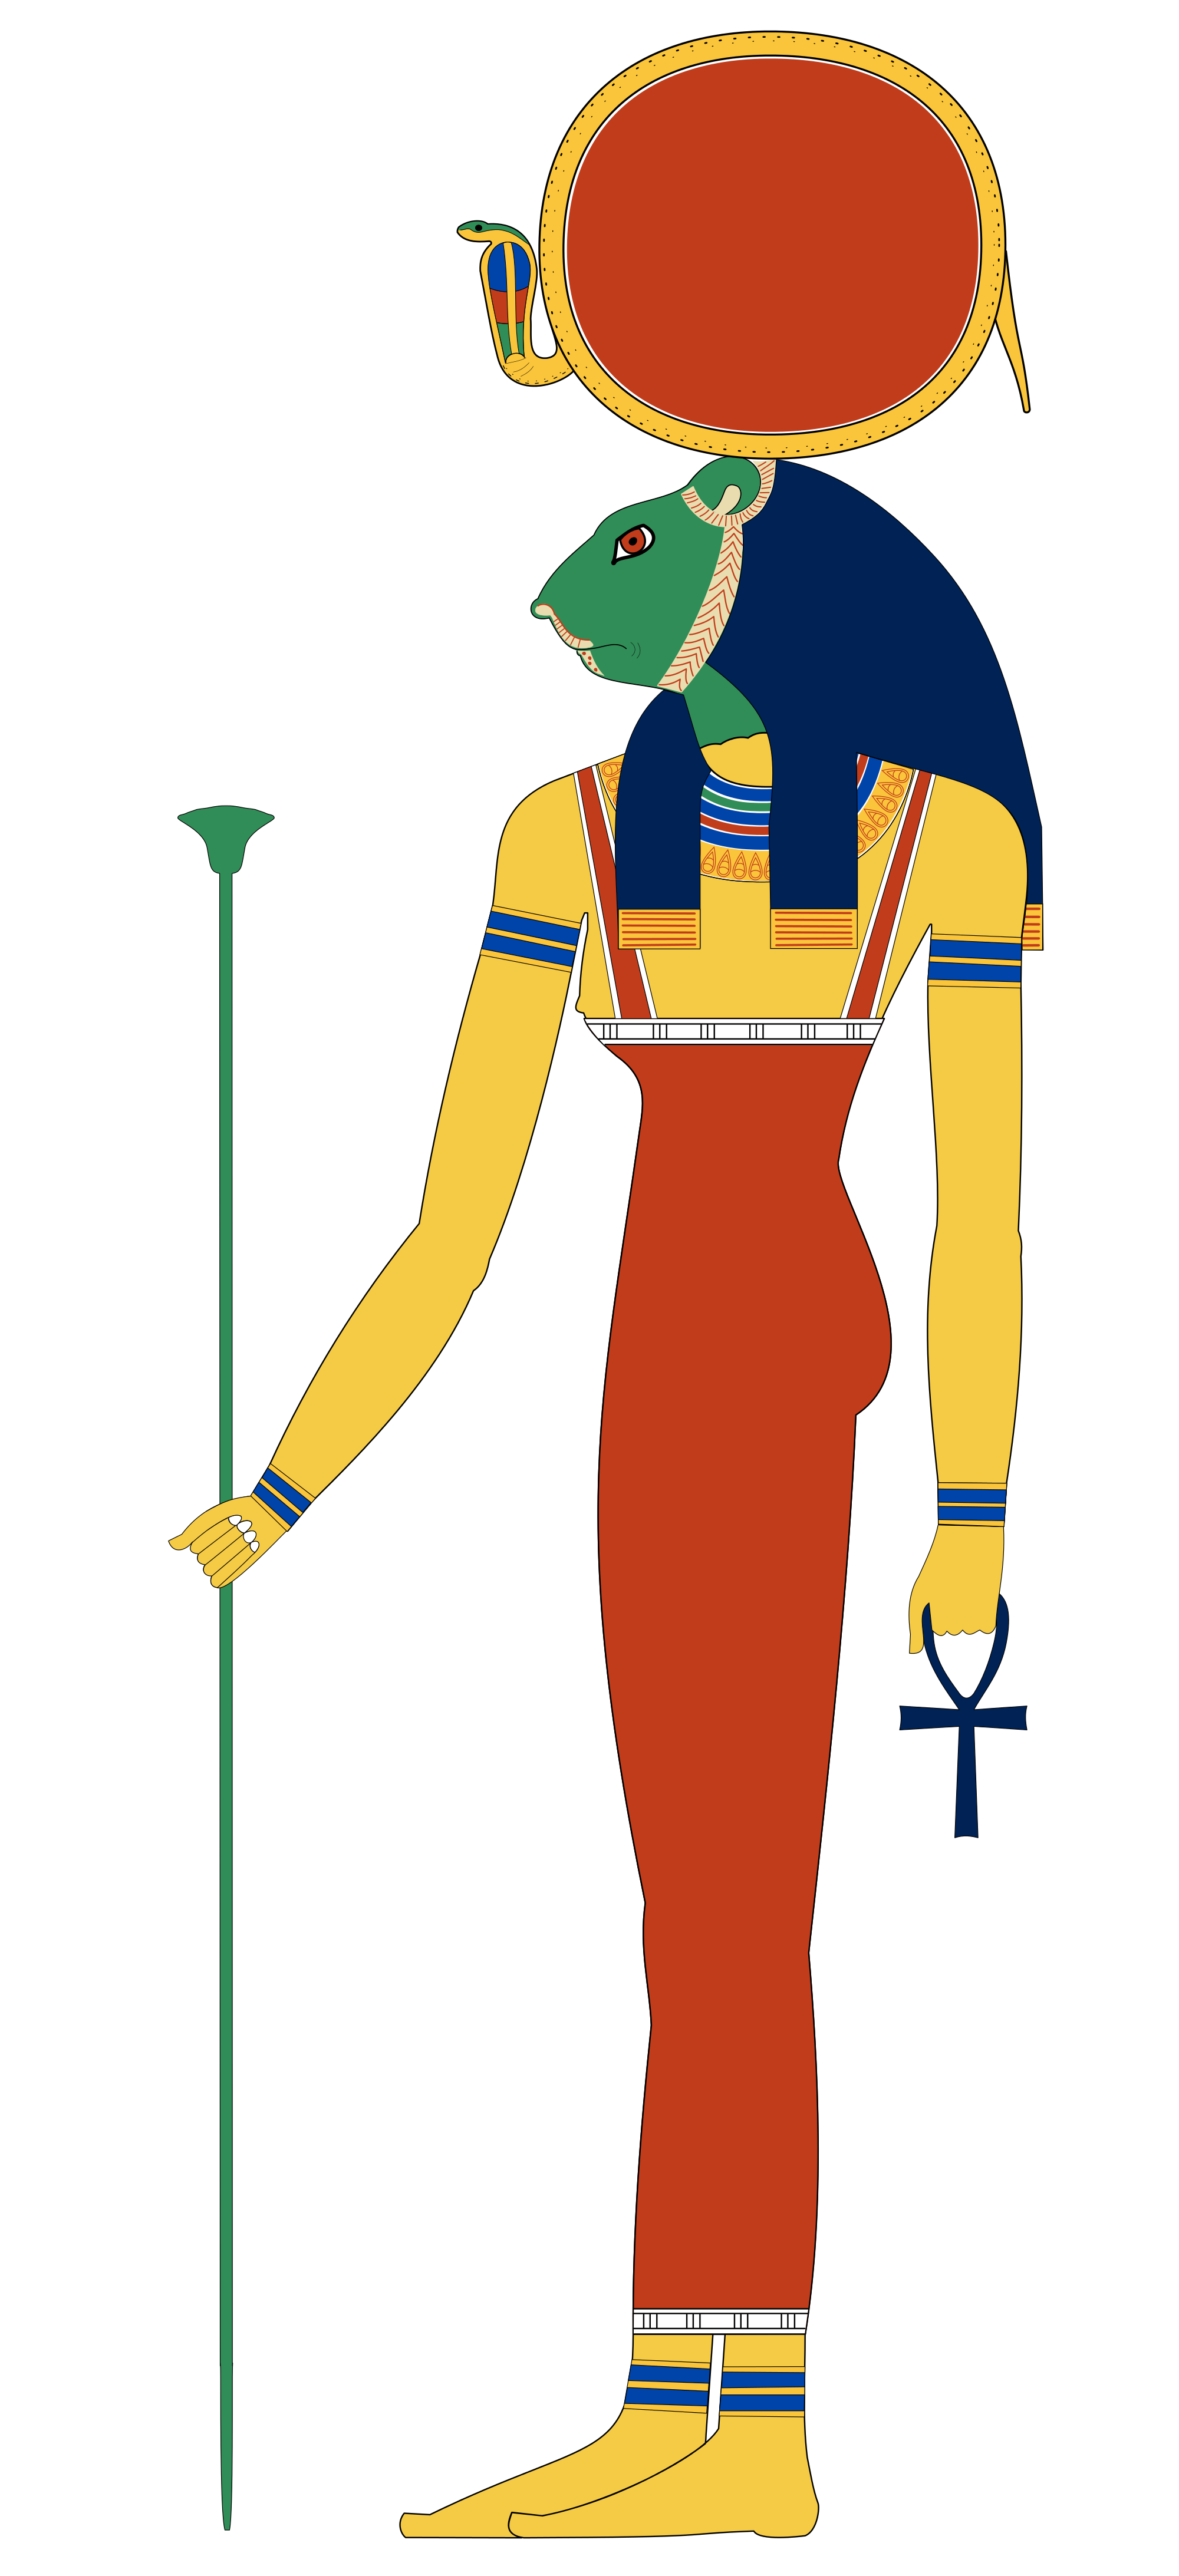 Egyptian sun clipart picture royalty free download egyptian gods sekhmet - Google Search | Egyptian deities | Pinterest ... picture royalty free download